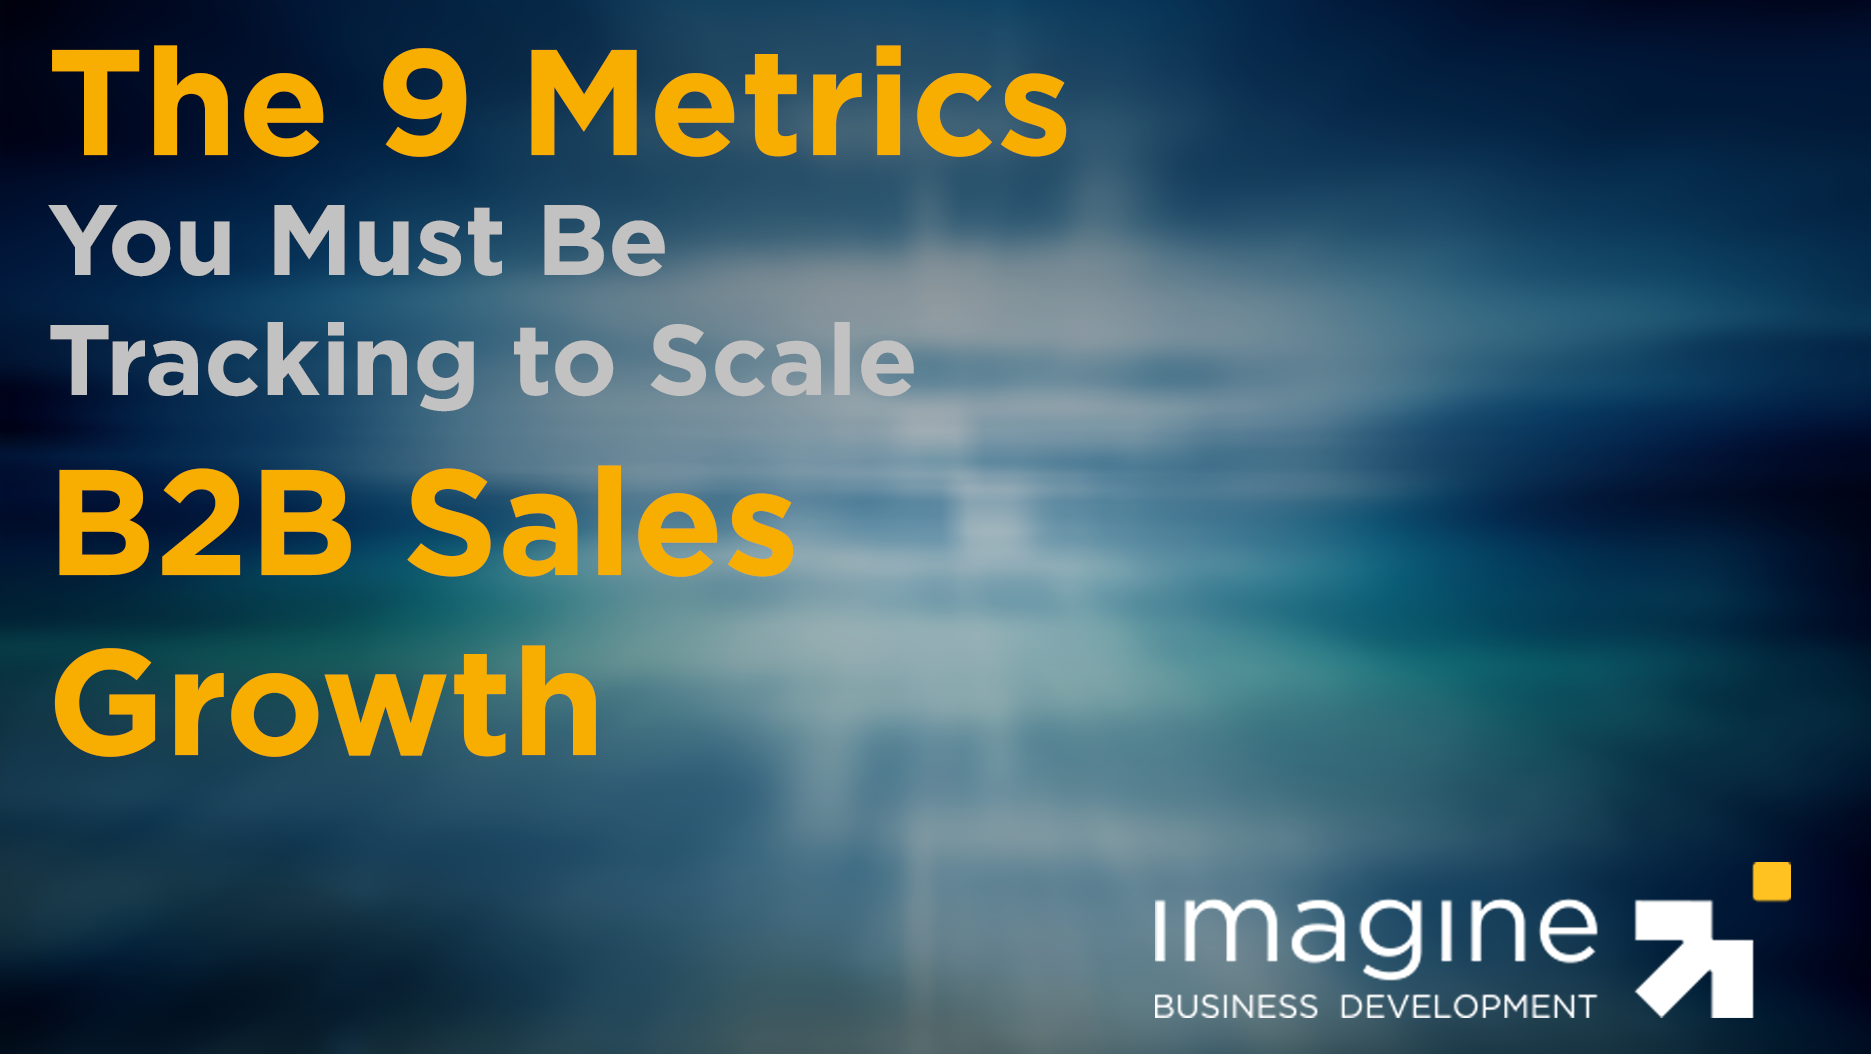 9-metriccs-must-be-tracking-to-scale-growth-cta